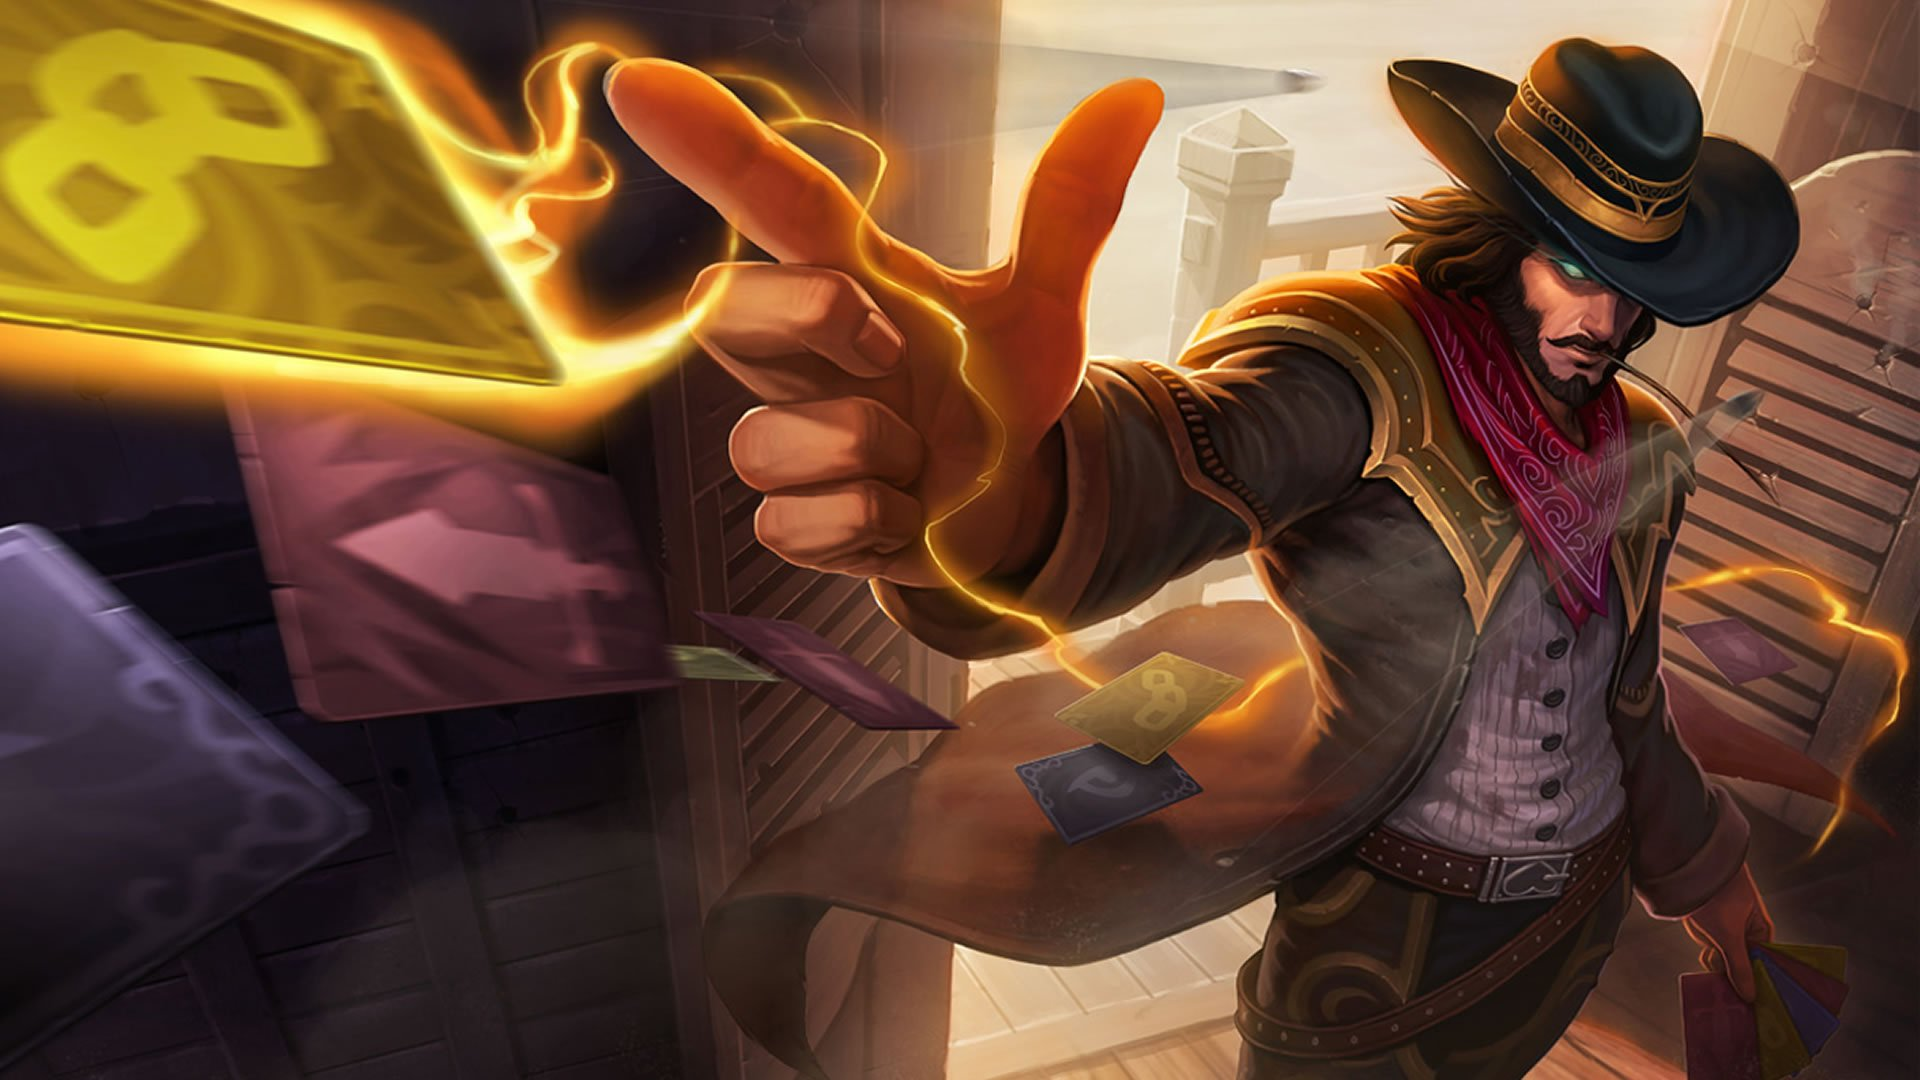 42 twisted fate league of legends hd wallpapers background hd wallpaper background image id591908 voltagebd Images